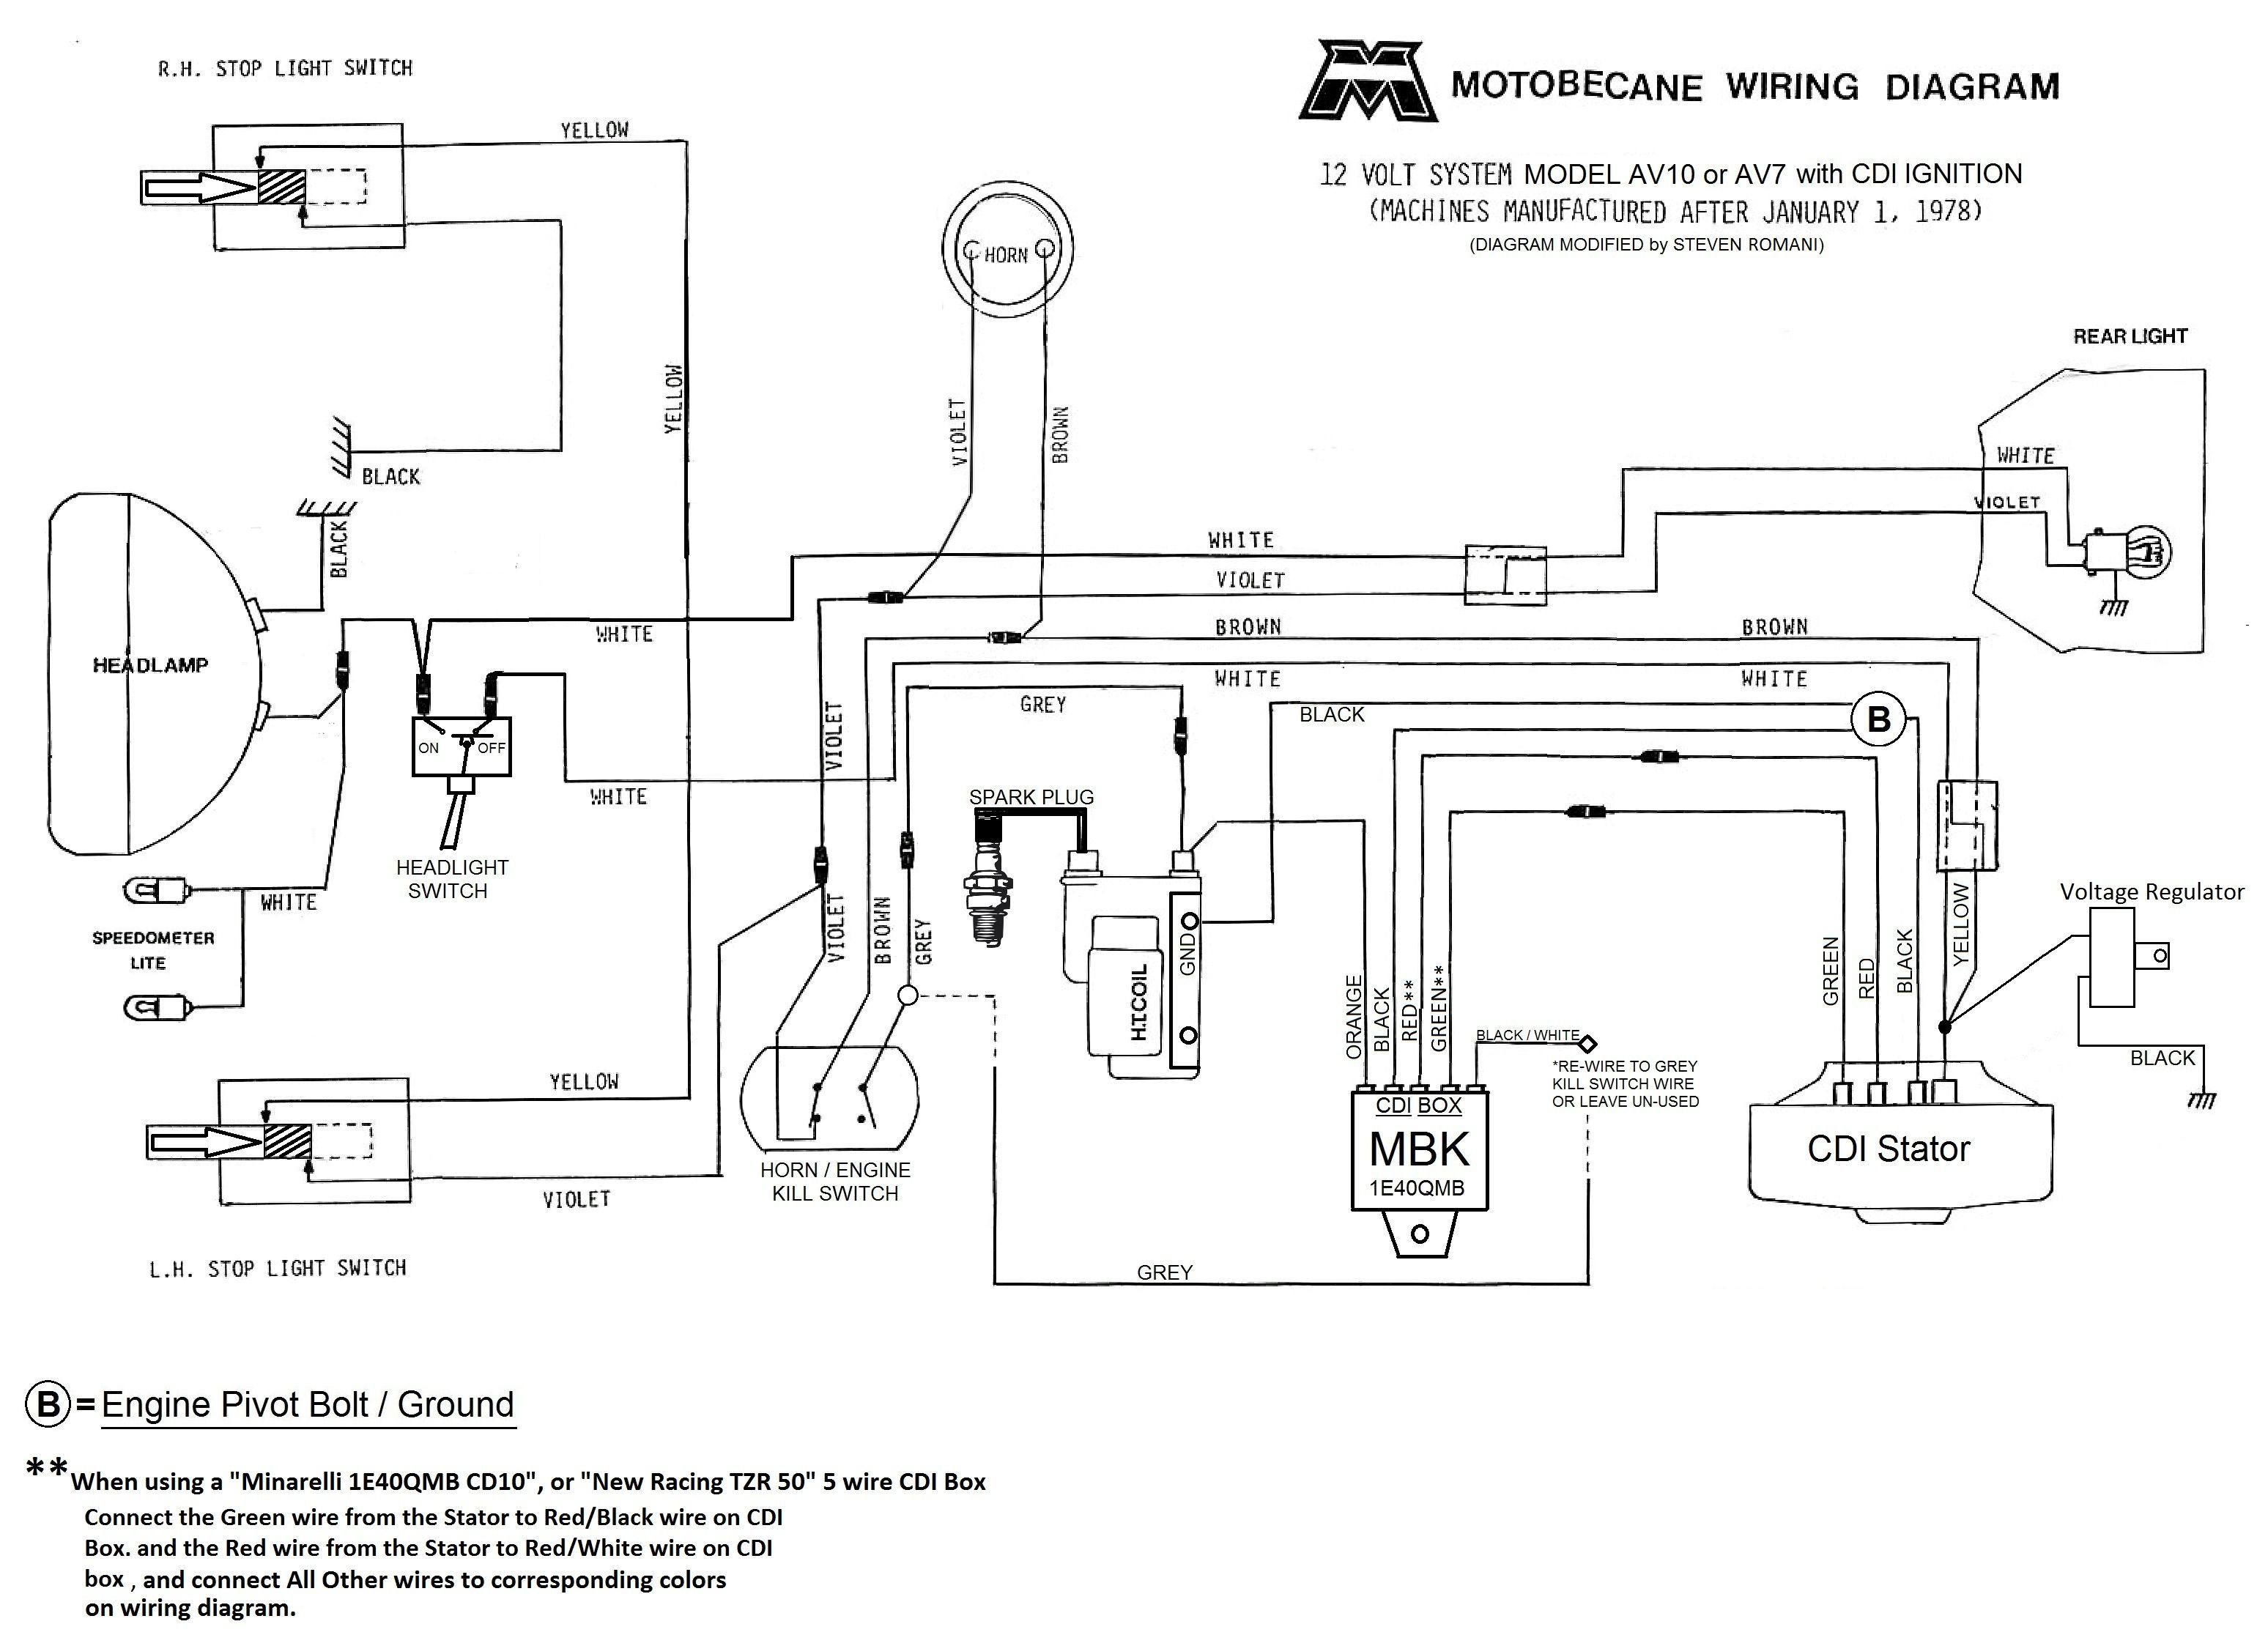 Motobecane 12v Cdi Wiring Diagram Av10 And Av7 Jpg Diagram Club Car Golf Cart Wire